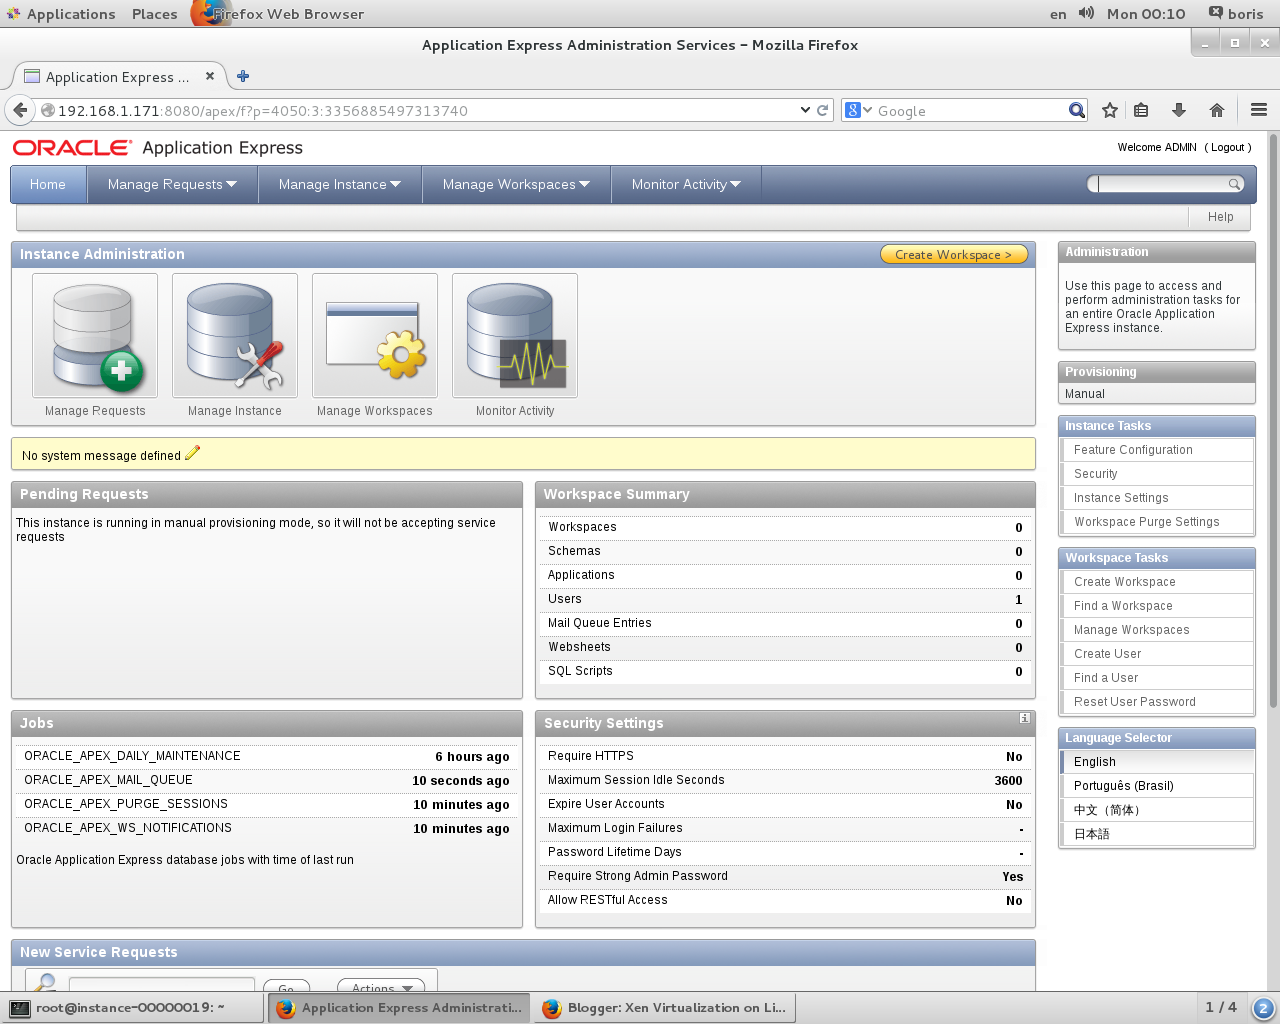 Xen Virtualization on Linux and Solaris: Running Oracle XE